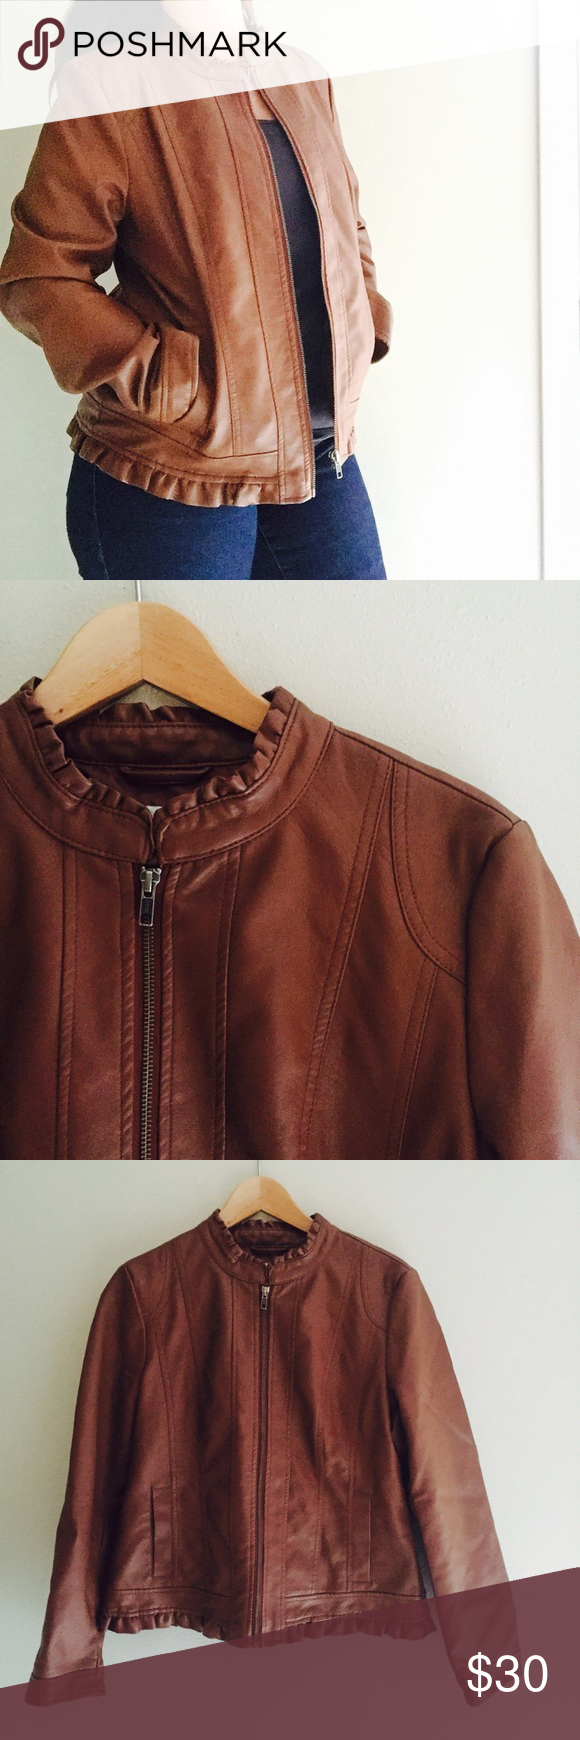 Final Price // Brown Faux Leather Jacket Ruffle Price drop💵💵💵This faux leather jacket by Christopher & Banks is gorgeous. Great quality and in excellent pre owned condition. Ruffle detailing at the neck and hem. Size M Christopher & Banks Jackets & Coats